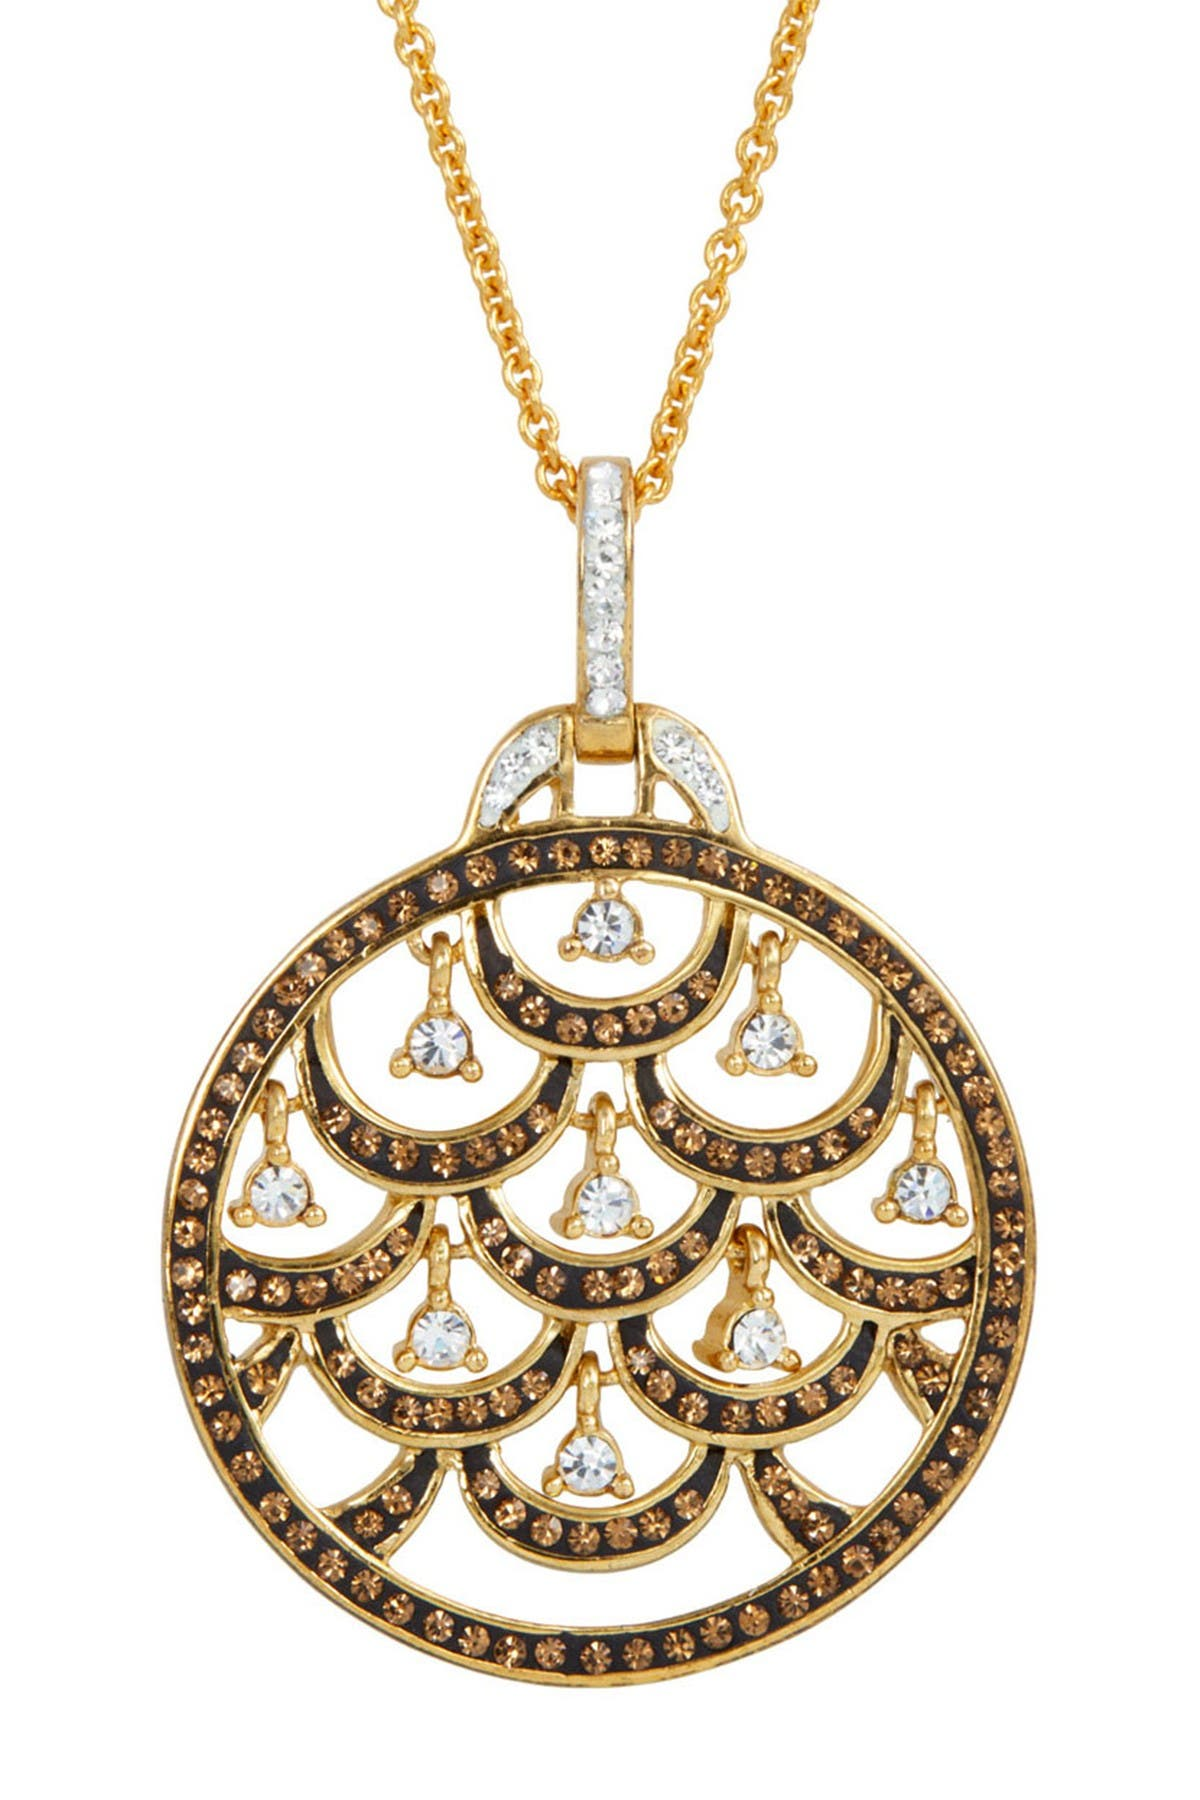 Image of Savvy Cie Dancing Crystal Medallion Pendant Necklace